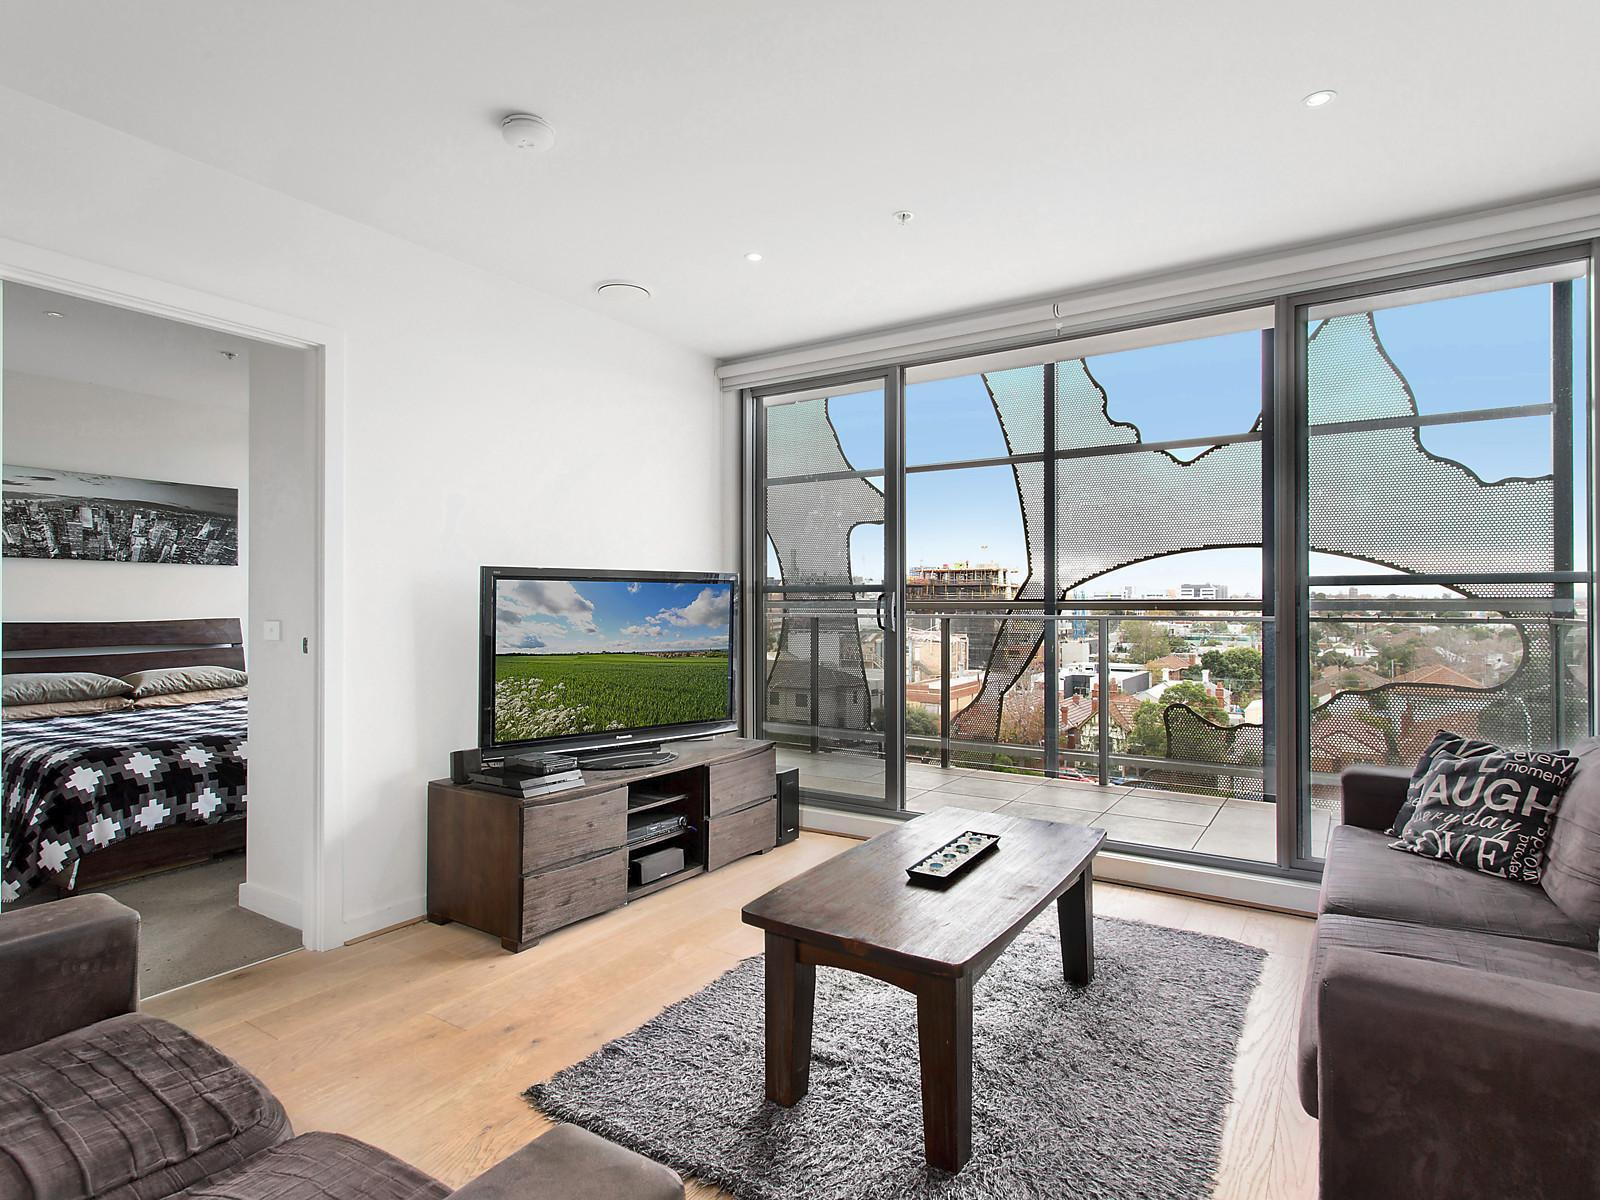 2 Bedroom Unit For Rent Melbourne 406 13 Wellington Street St Kilda Apartment Sold